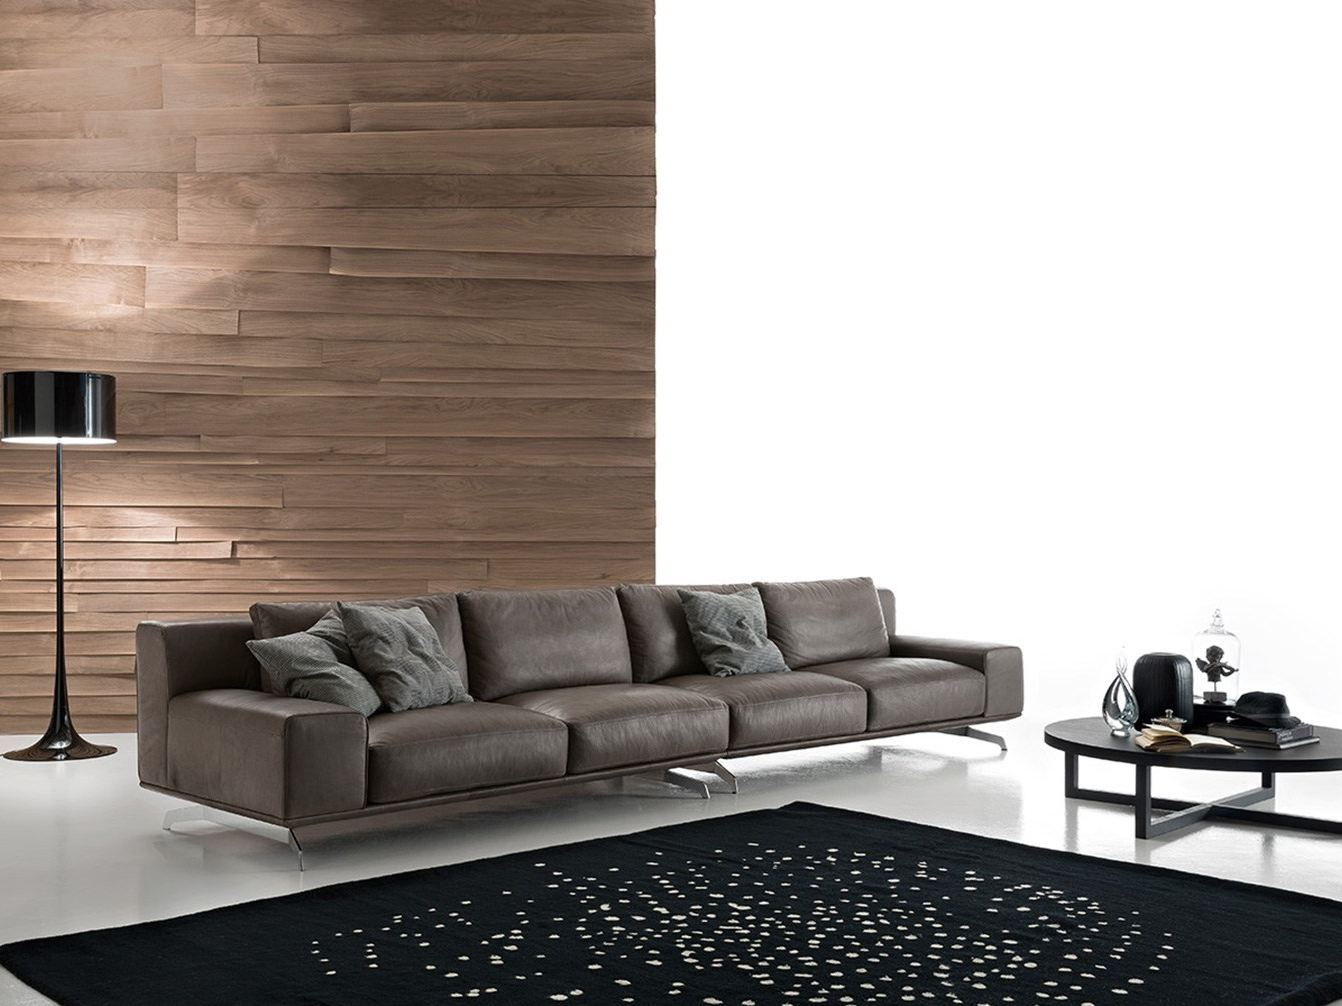 DALTON LEATHER Divano componibile by Ditre Italia design Stefano Spessotto, Lorella Agnoletto